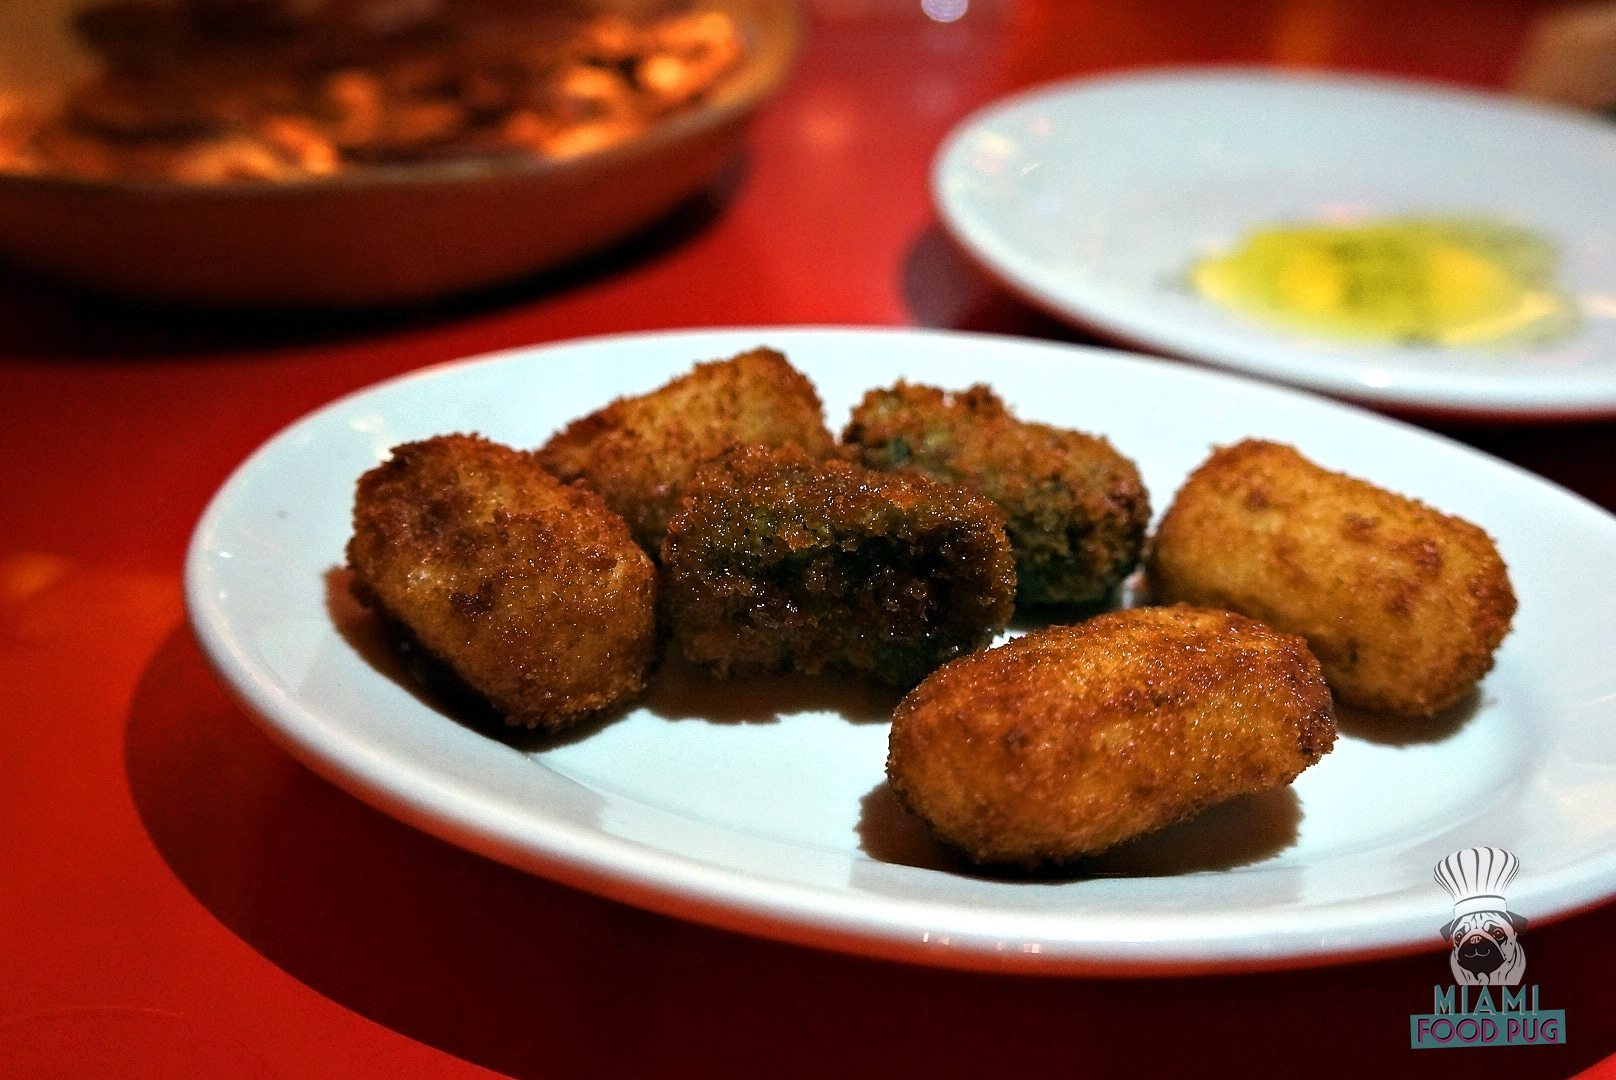 La Feria's Croquetas - Ham, Cod and Spinach